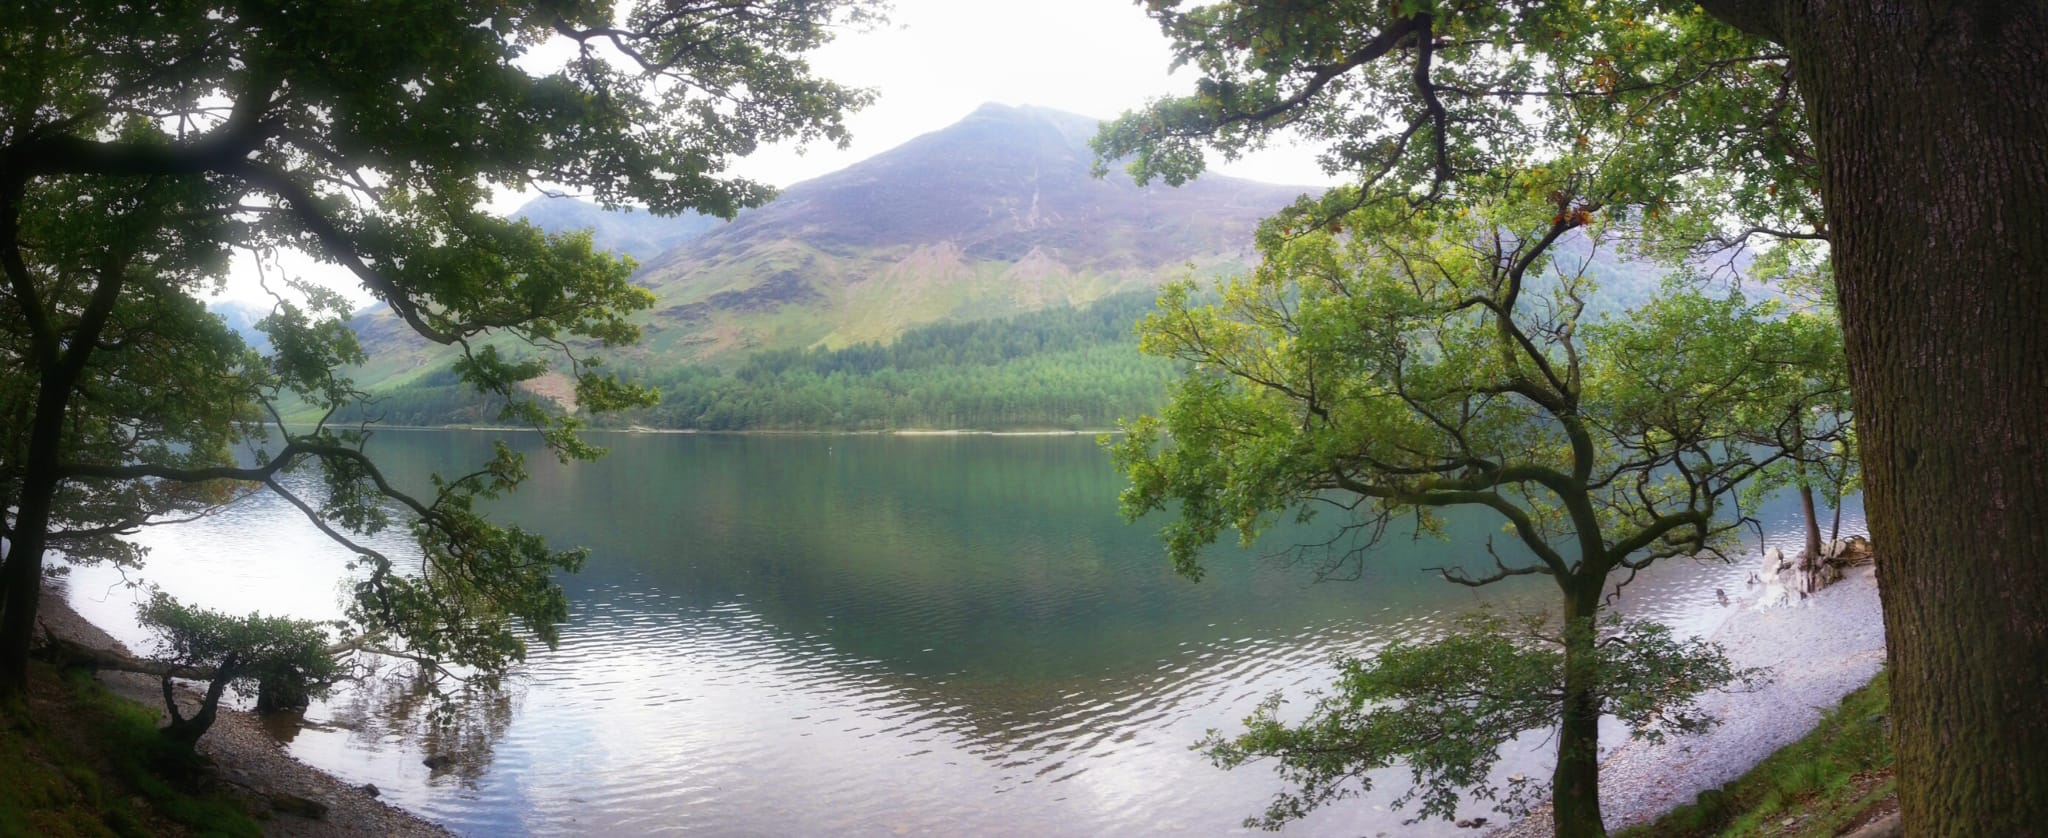 A view towards the High Stile range of fells from the northern shore of Buttermere, framed with trees